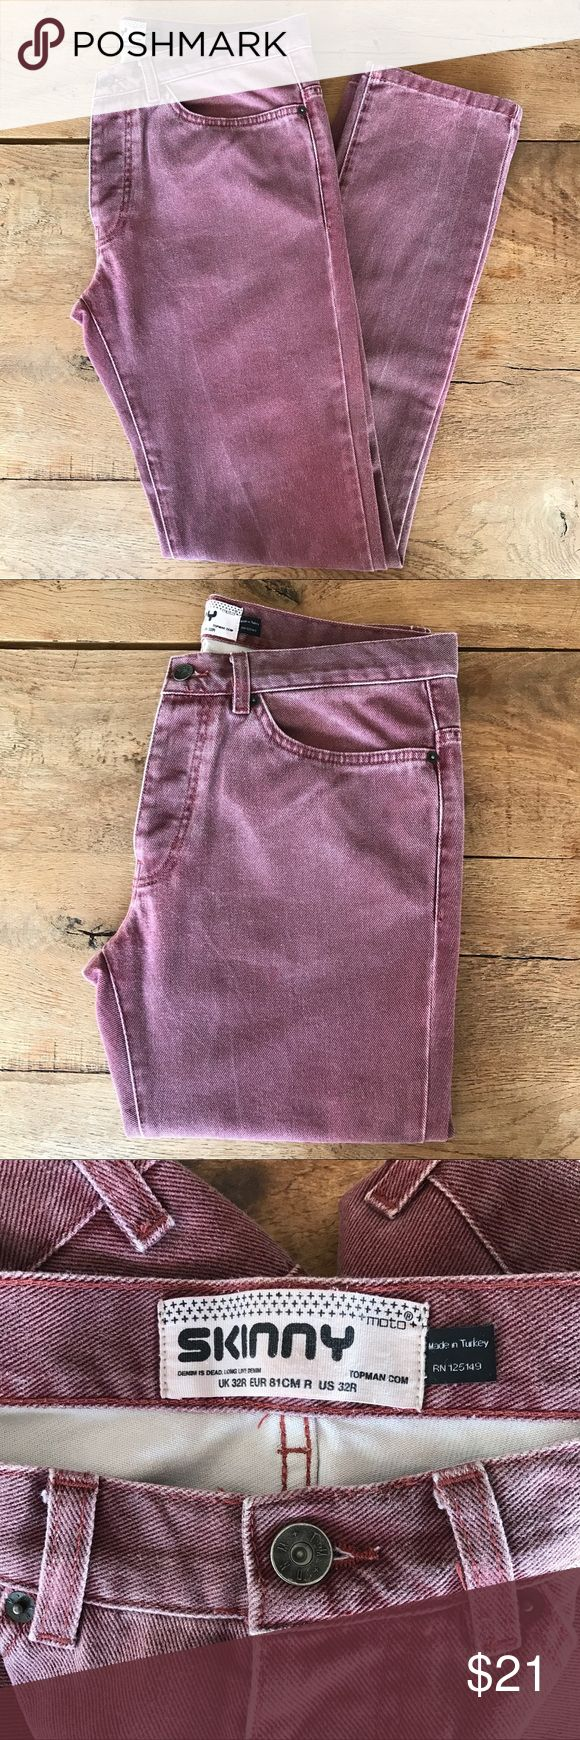 """Topman Skinny Jeans Topman """"skinny moto"""" jeans in a faded maroon wash. 4-button fly. 31"""" inseam, 12"""" ankle opening. Some stretch to the denim fabric. Good used condition. Topman Jeans Skinny"""